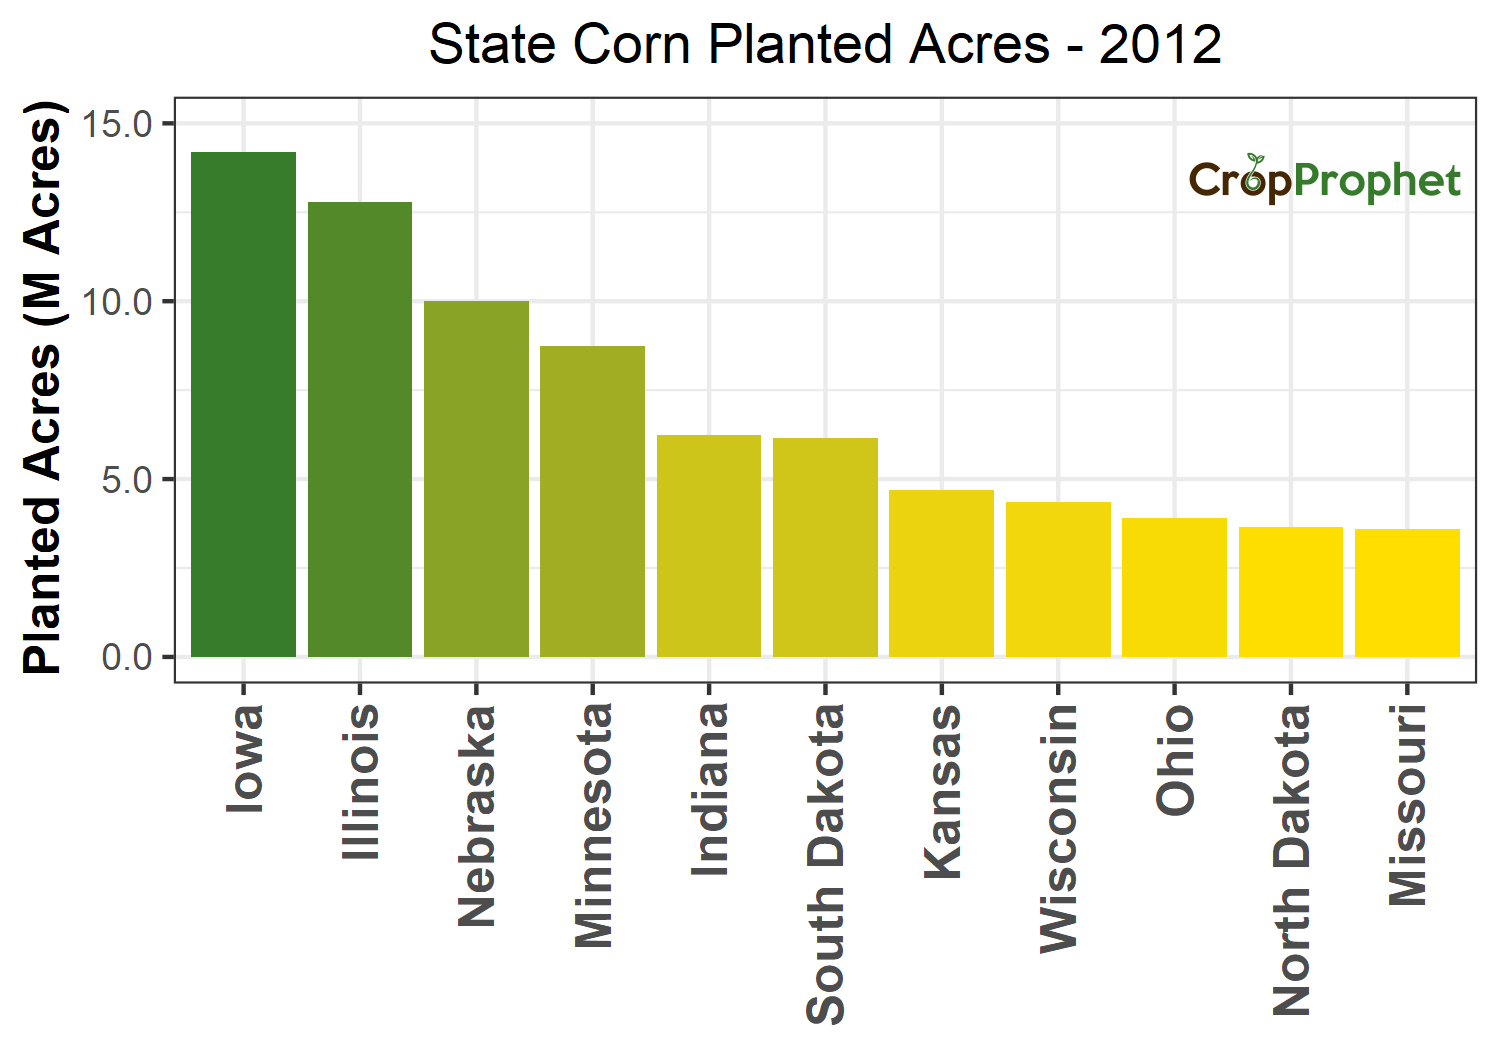 Corn Production by State - 2012 Rankings